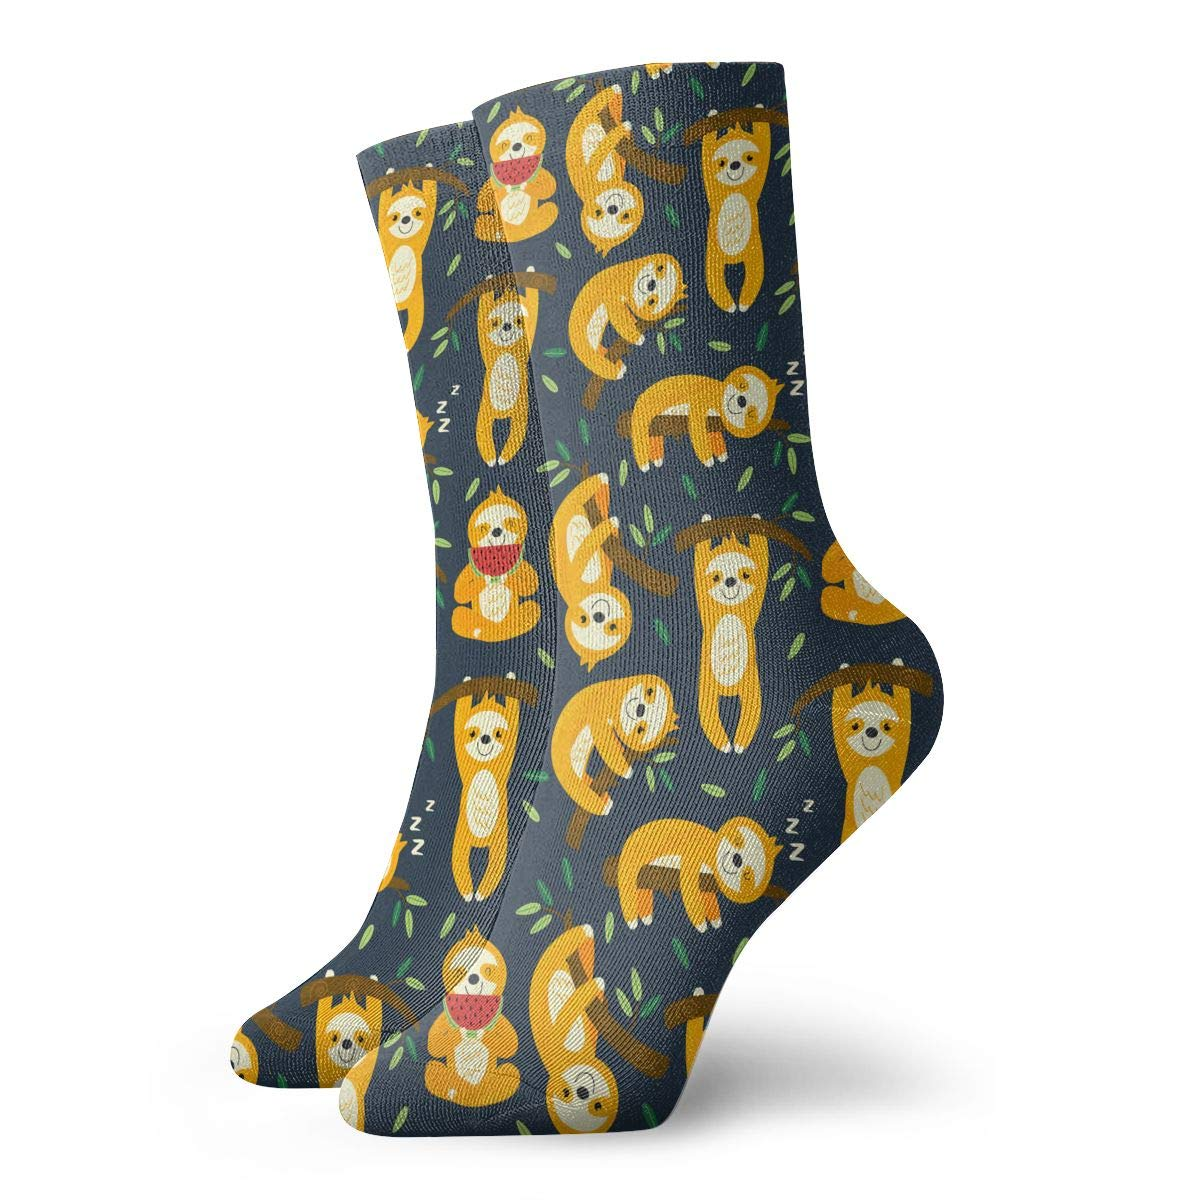 Unisex Funny Cute Sloth Yellow Athletic Quarter Ankle Print Breathable Hiking Running Socks